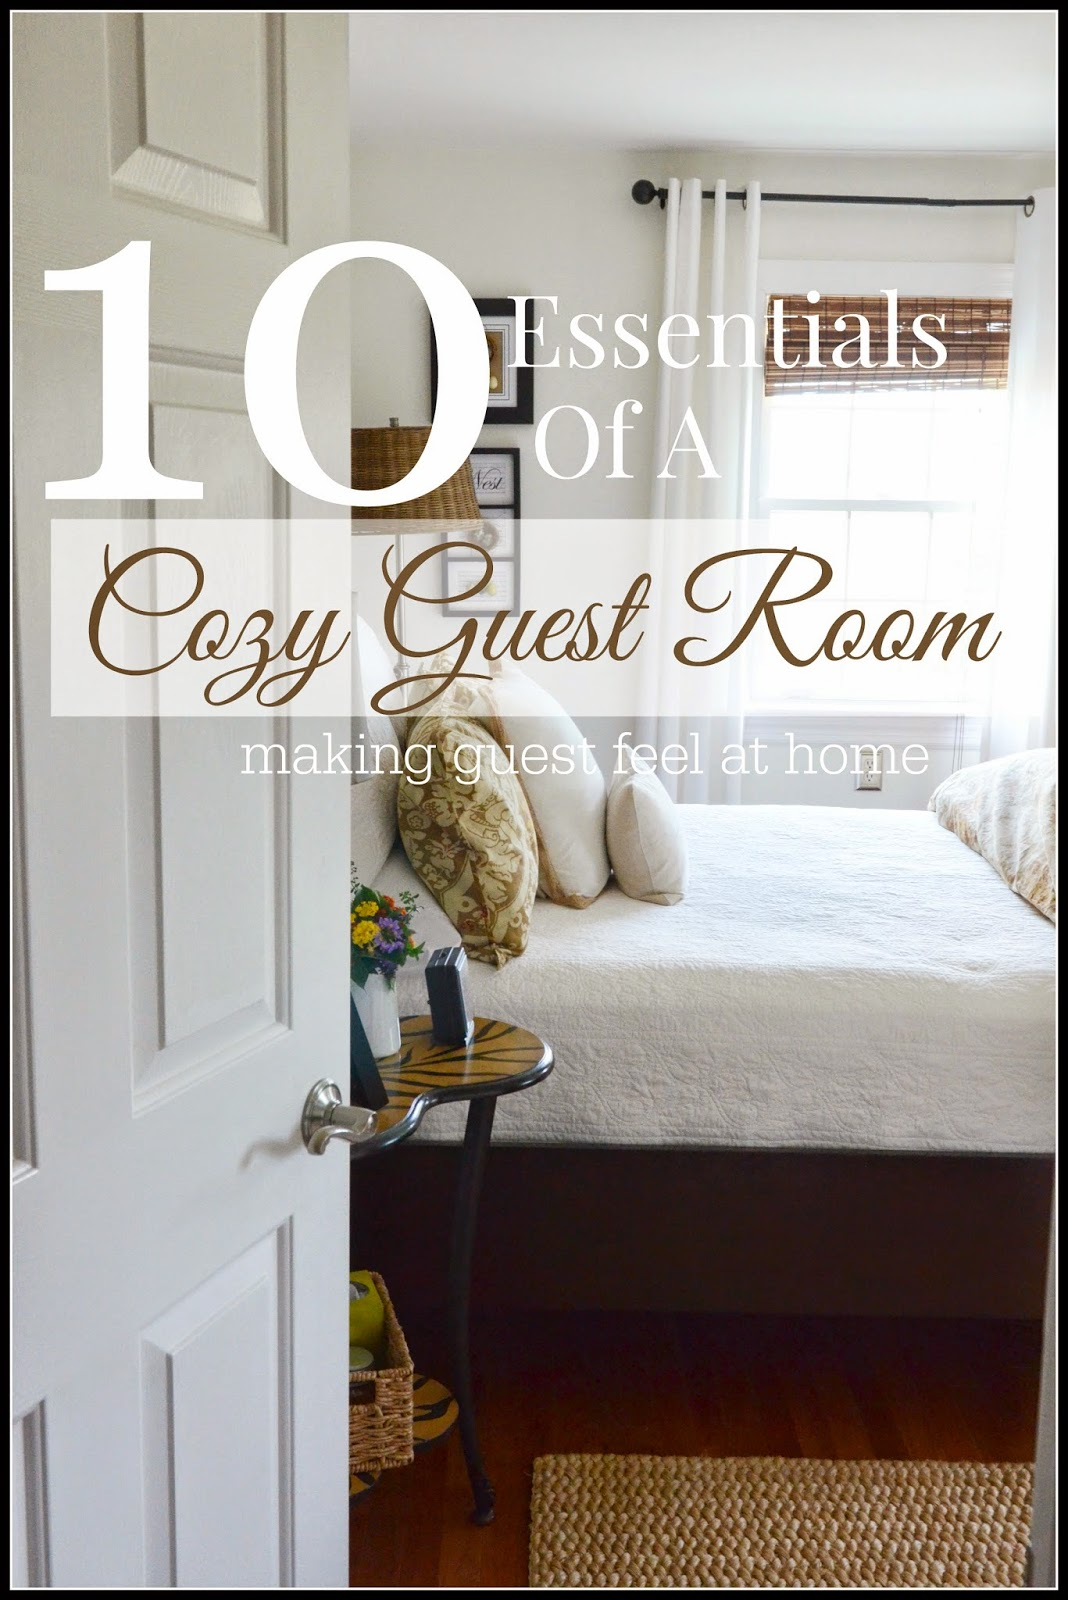 10 Essentials Of A Cozy Guest Room Stonegable